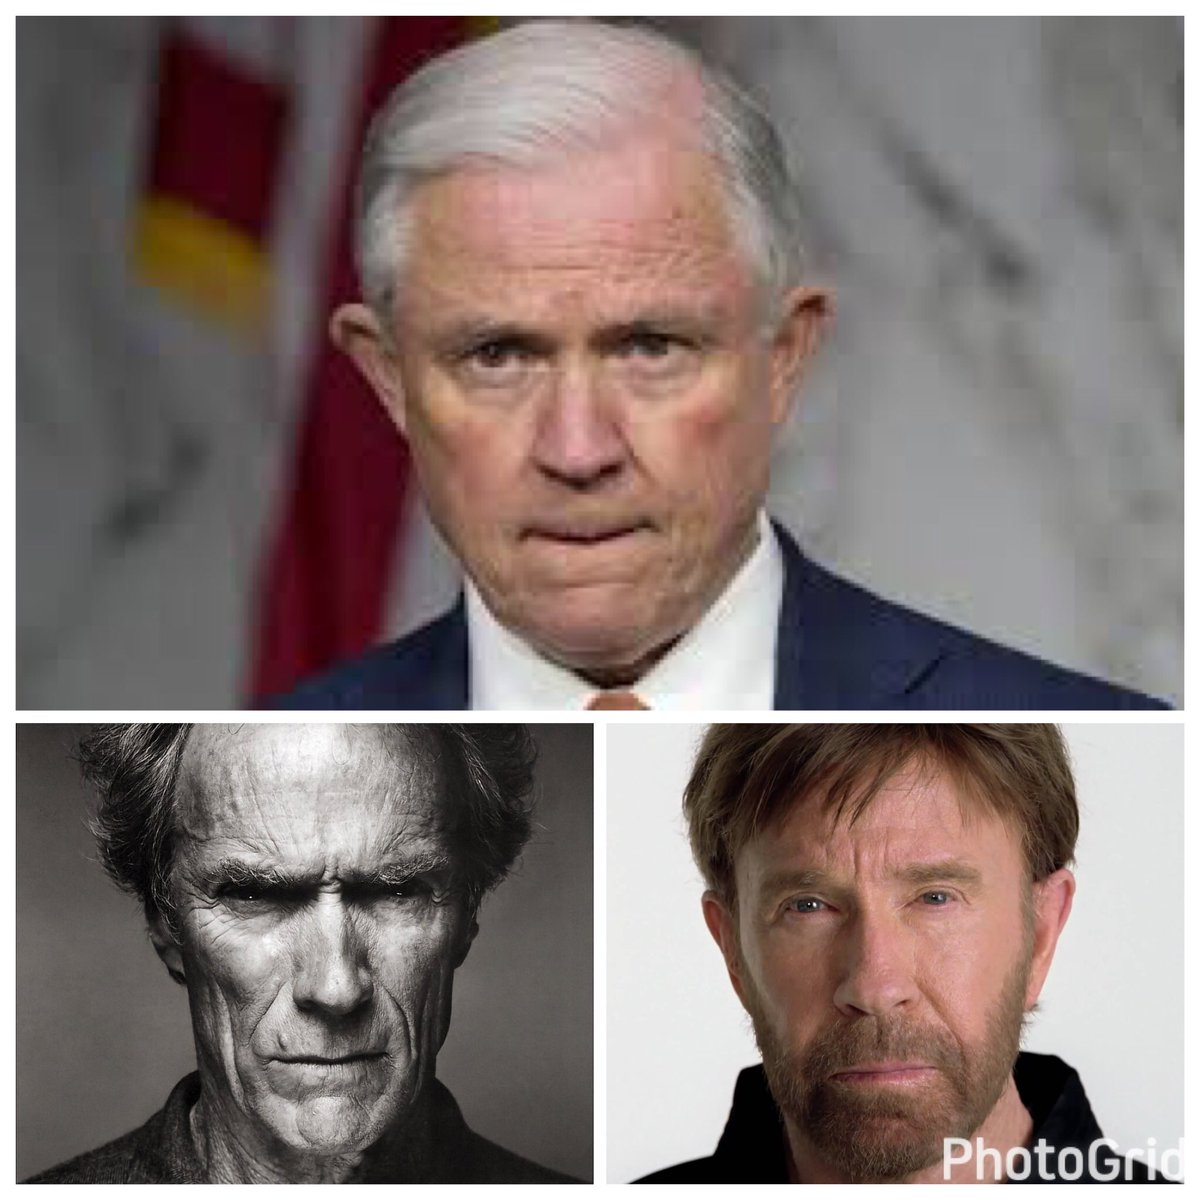 When #JeffSessions gives that look, #sanctuarycities SHOULD be worried!  Bonus: GREAT tough guy stares from Republicans #SchoolisinSessions<br>http://pic.twitter.com/zdB82HajF3